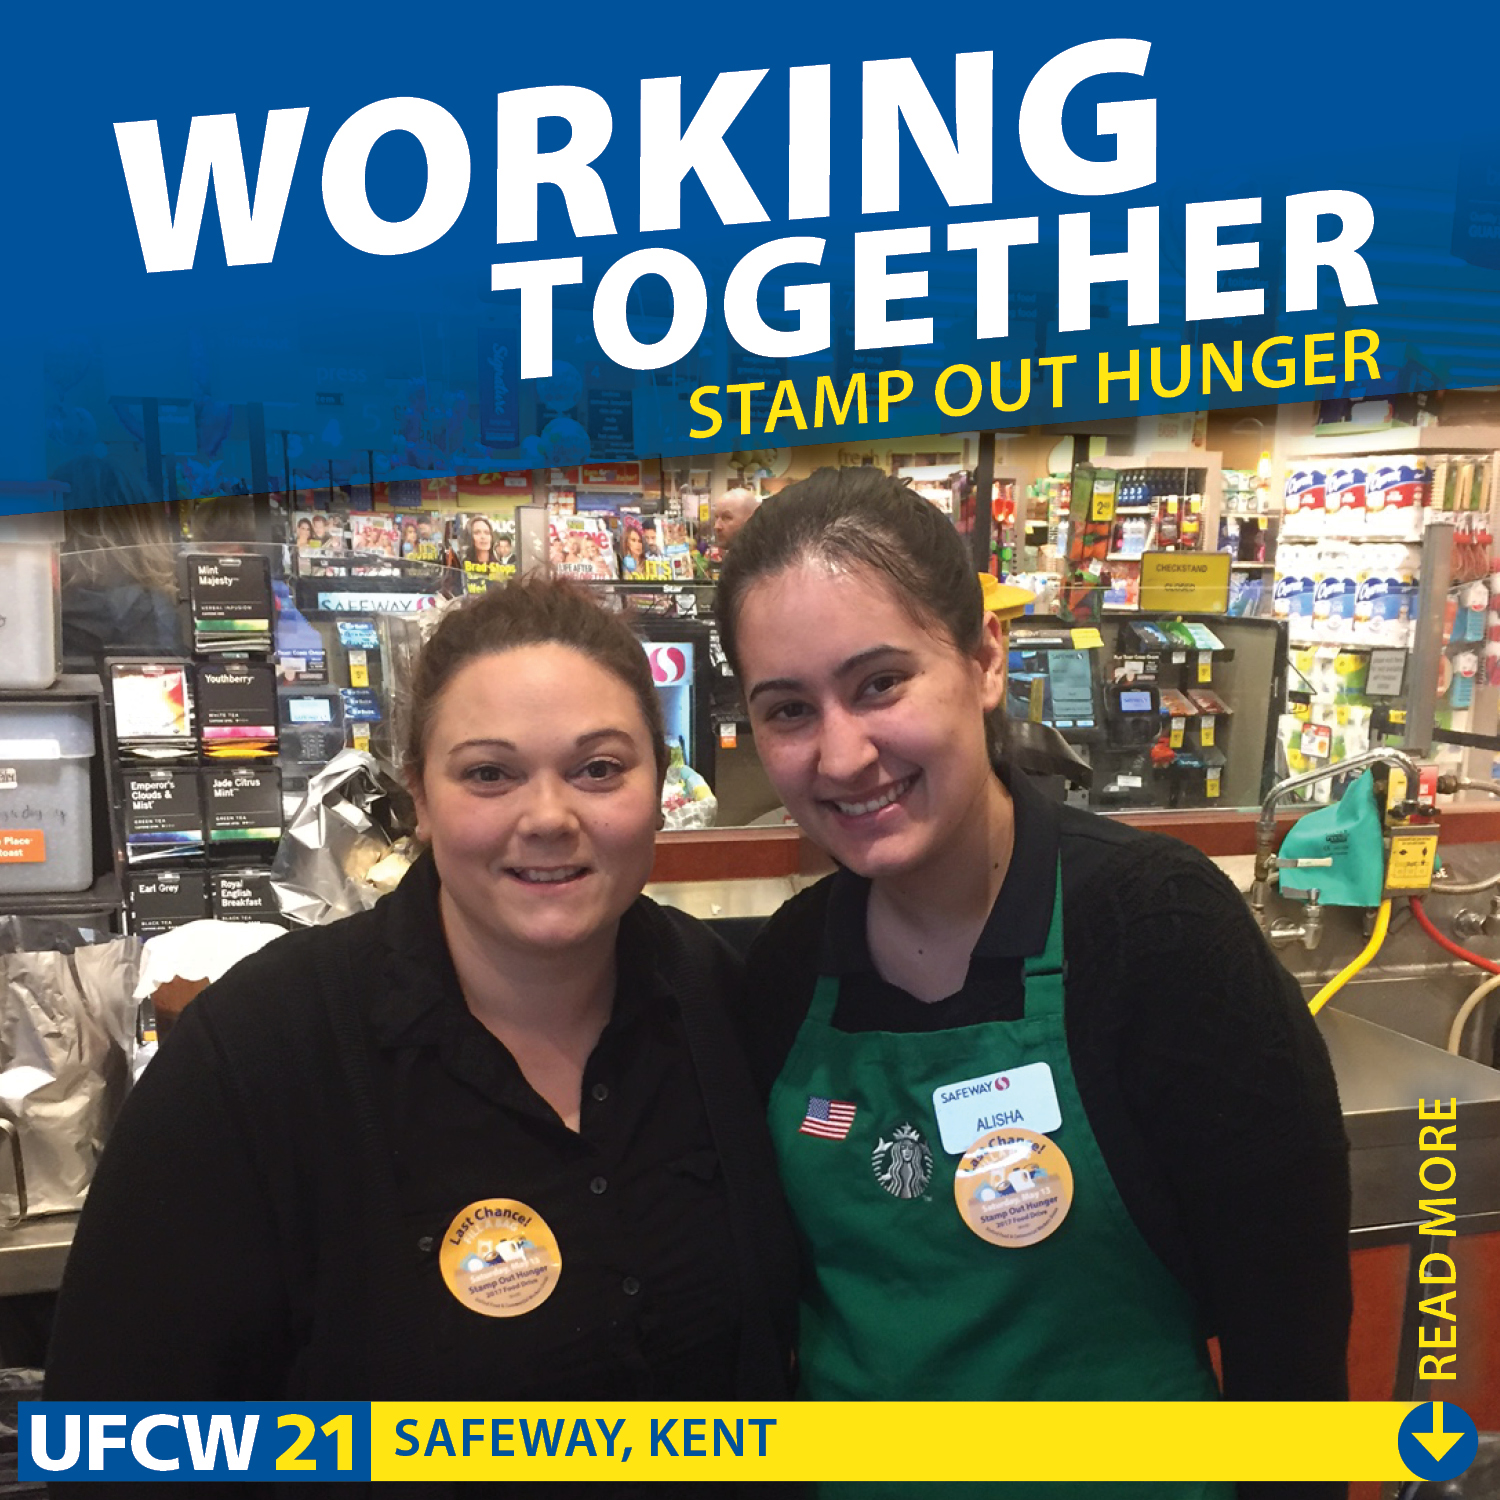 Safeway members in Kent wore stickers encouraging shoppers to donate food on May 13 during the nationwide stamp out Hunger drive. UFCW helped sponsor the drive which is led by the National Letter Carriers Association.   Learn more in an article published in Huffington Post.